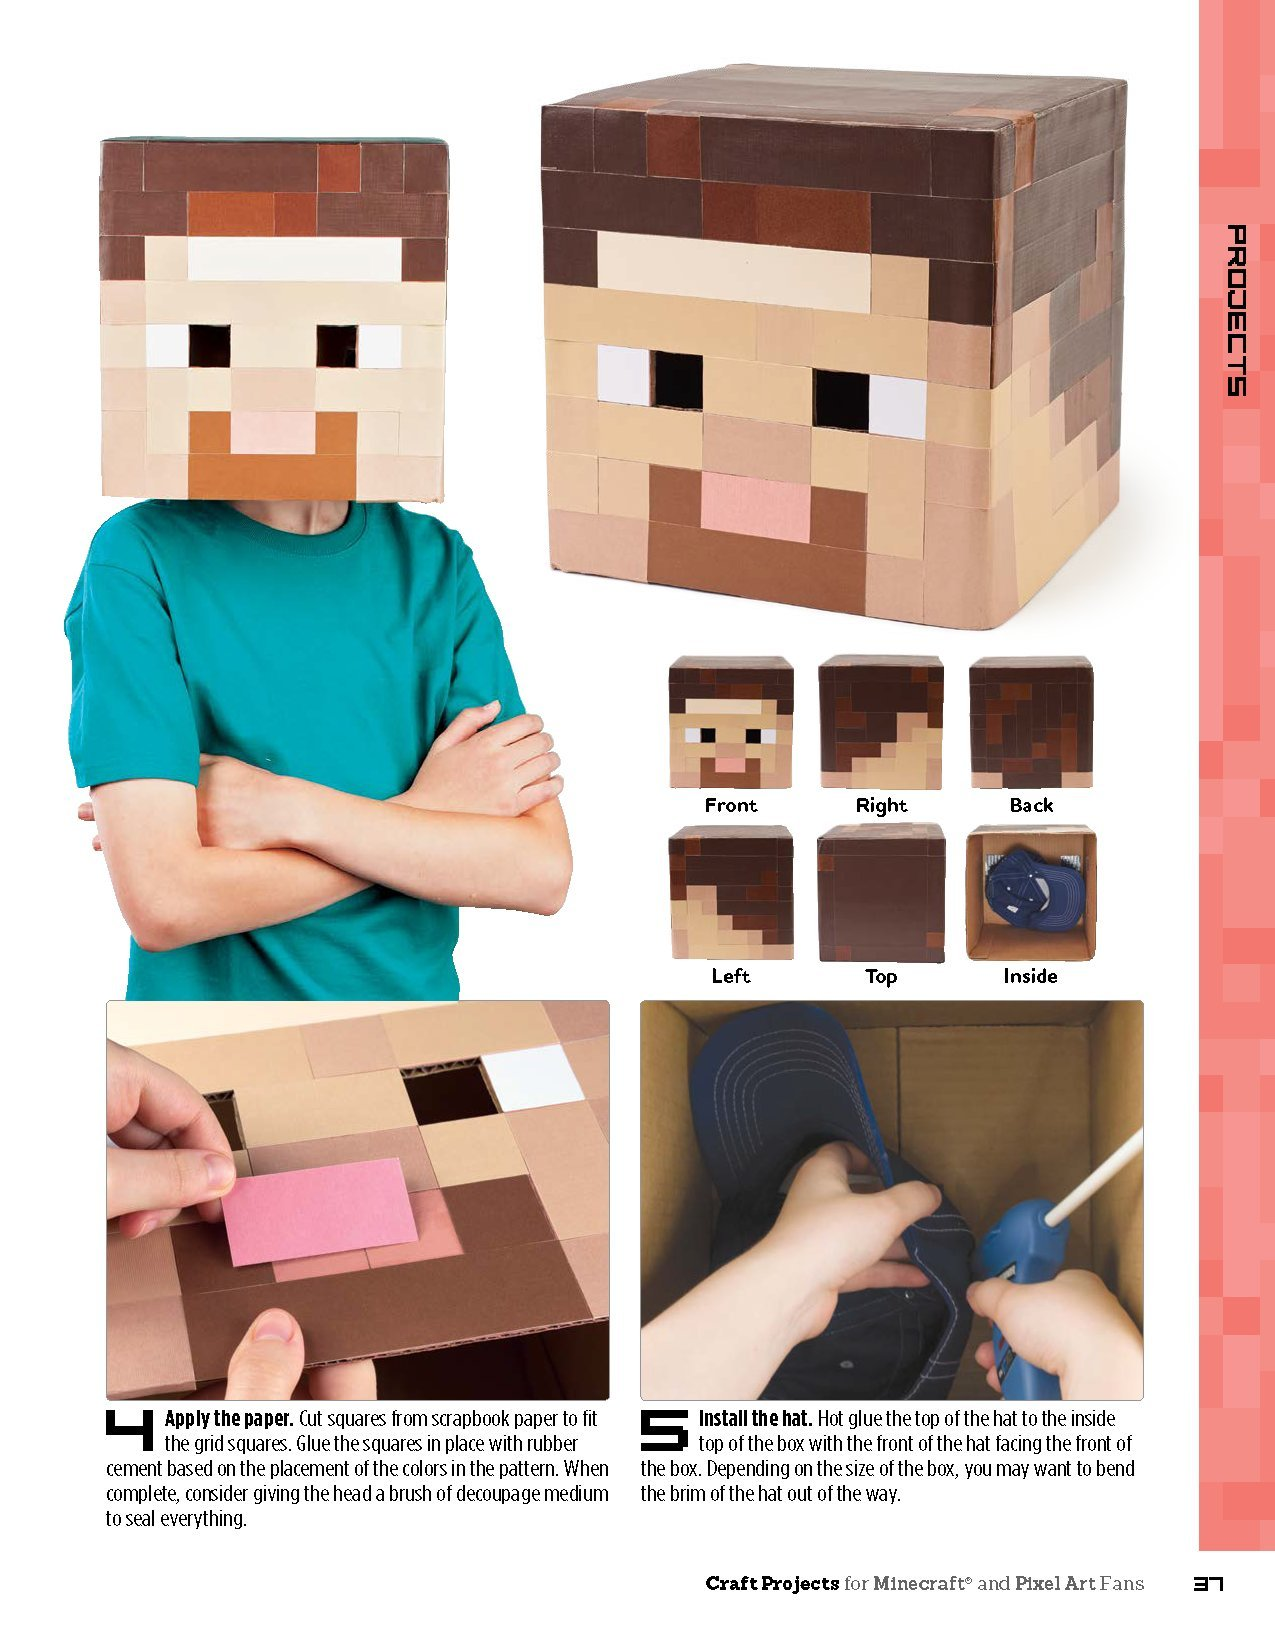 Craft Projects For Minecraft And Pixel Art Fans An Independent Do